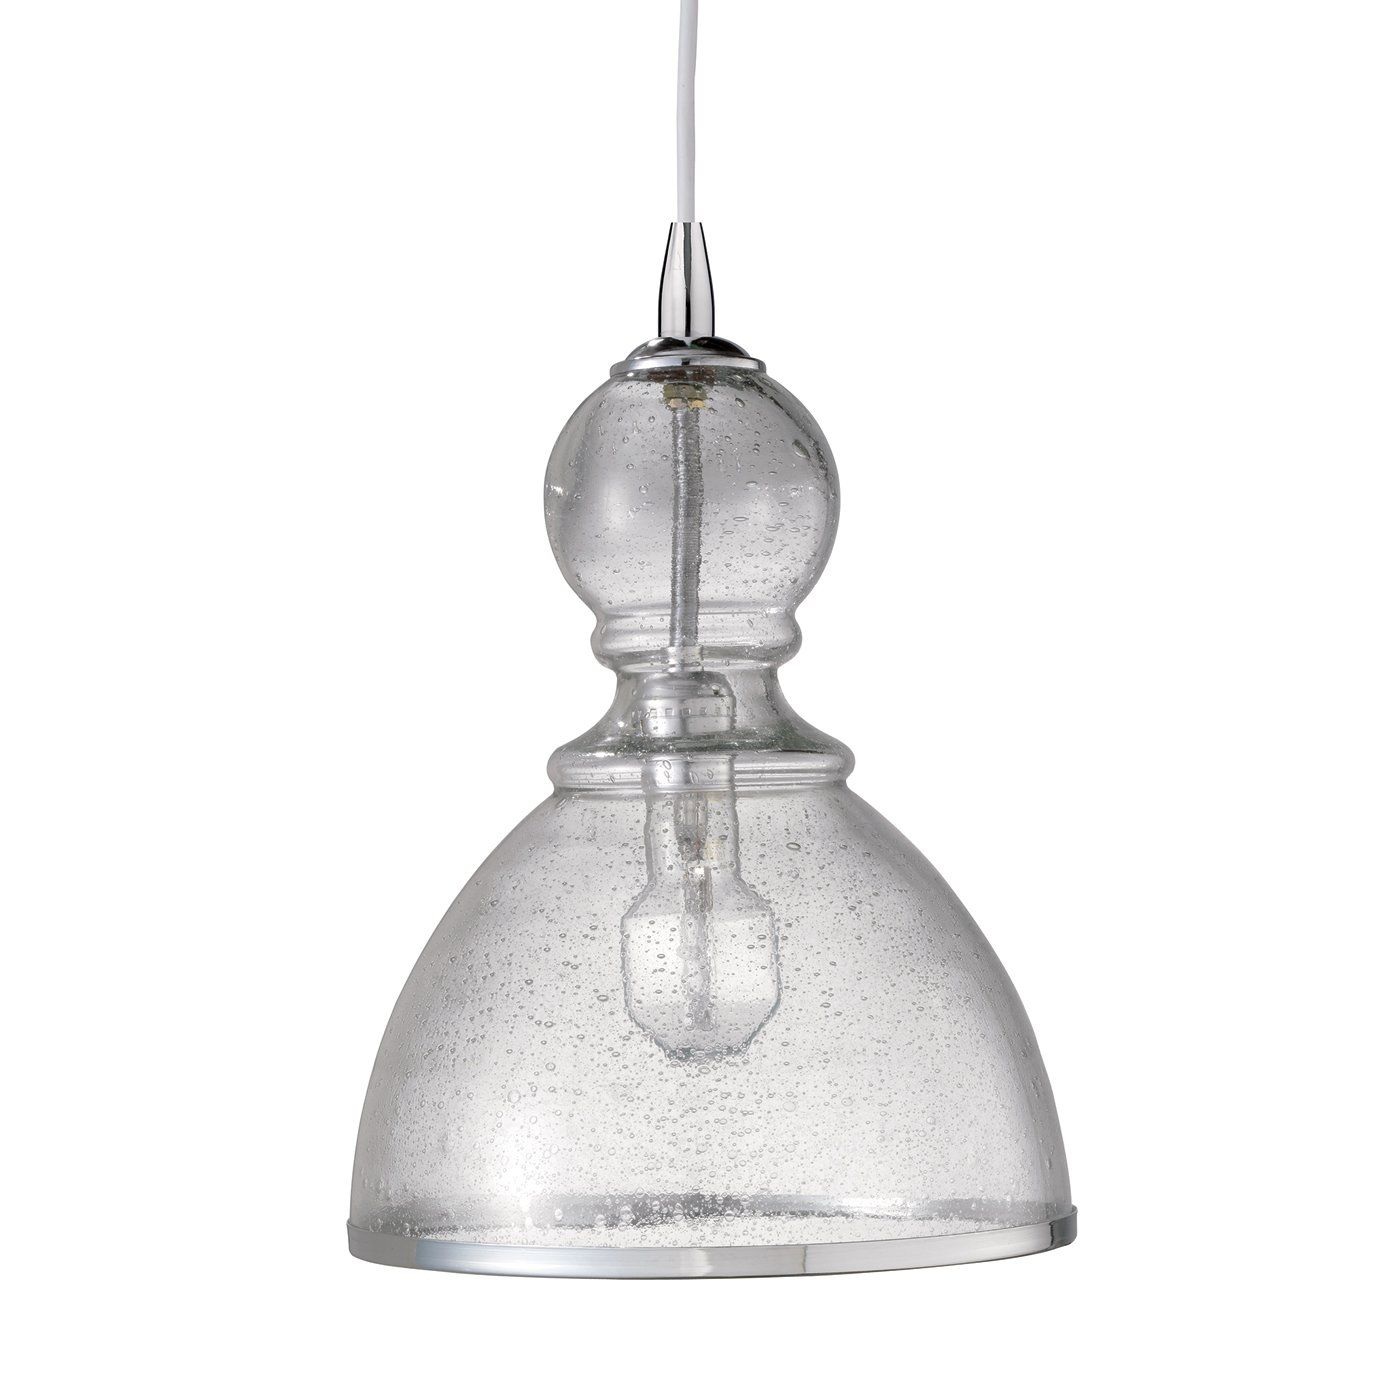 Shop jamie young 5stch lgcl large clear glass st charles mini jamie young lighting pendant saint charles seeded glass clear large i think this is a better shape for over a table but too small in diameter i like the aloadofball Image collections